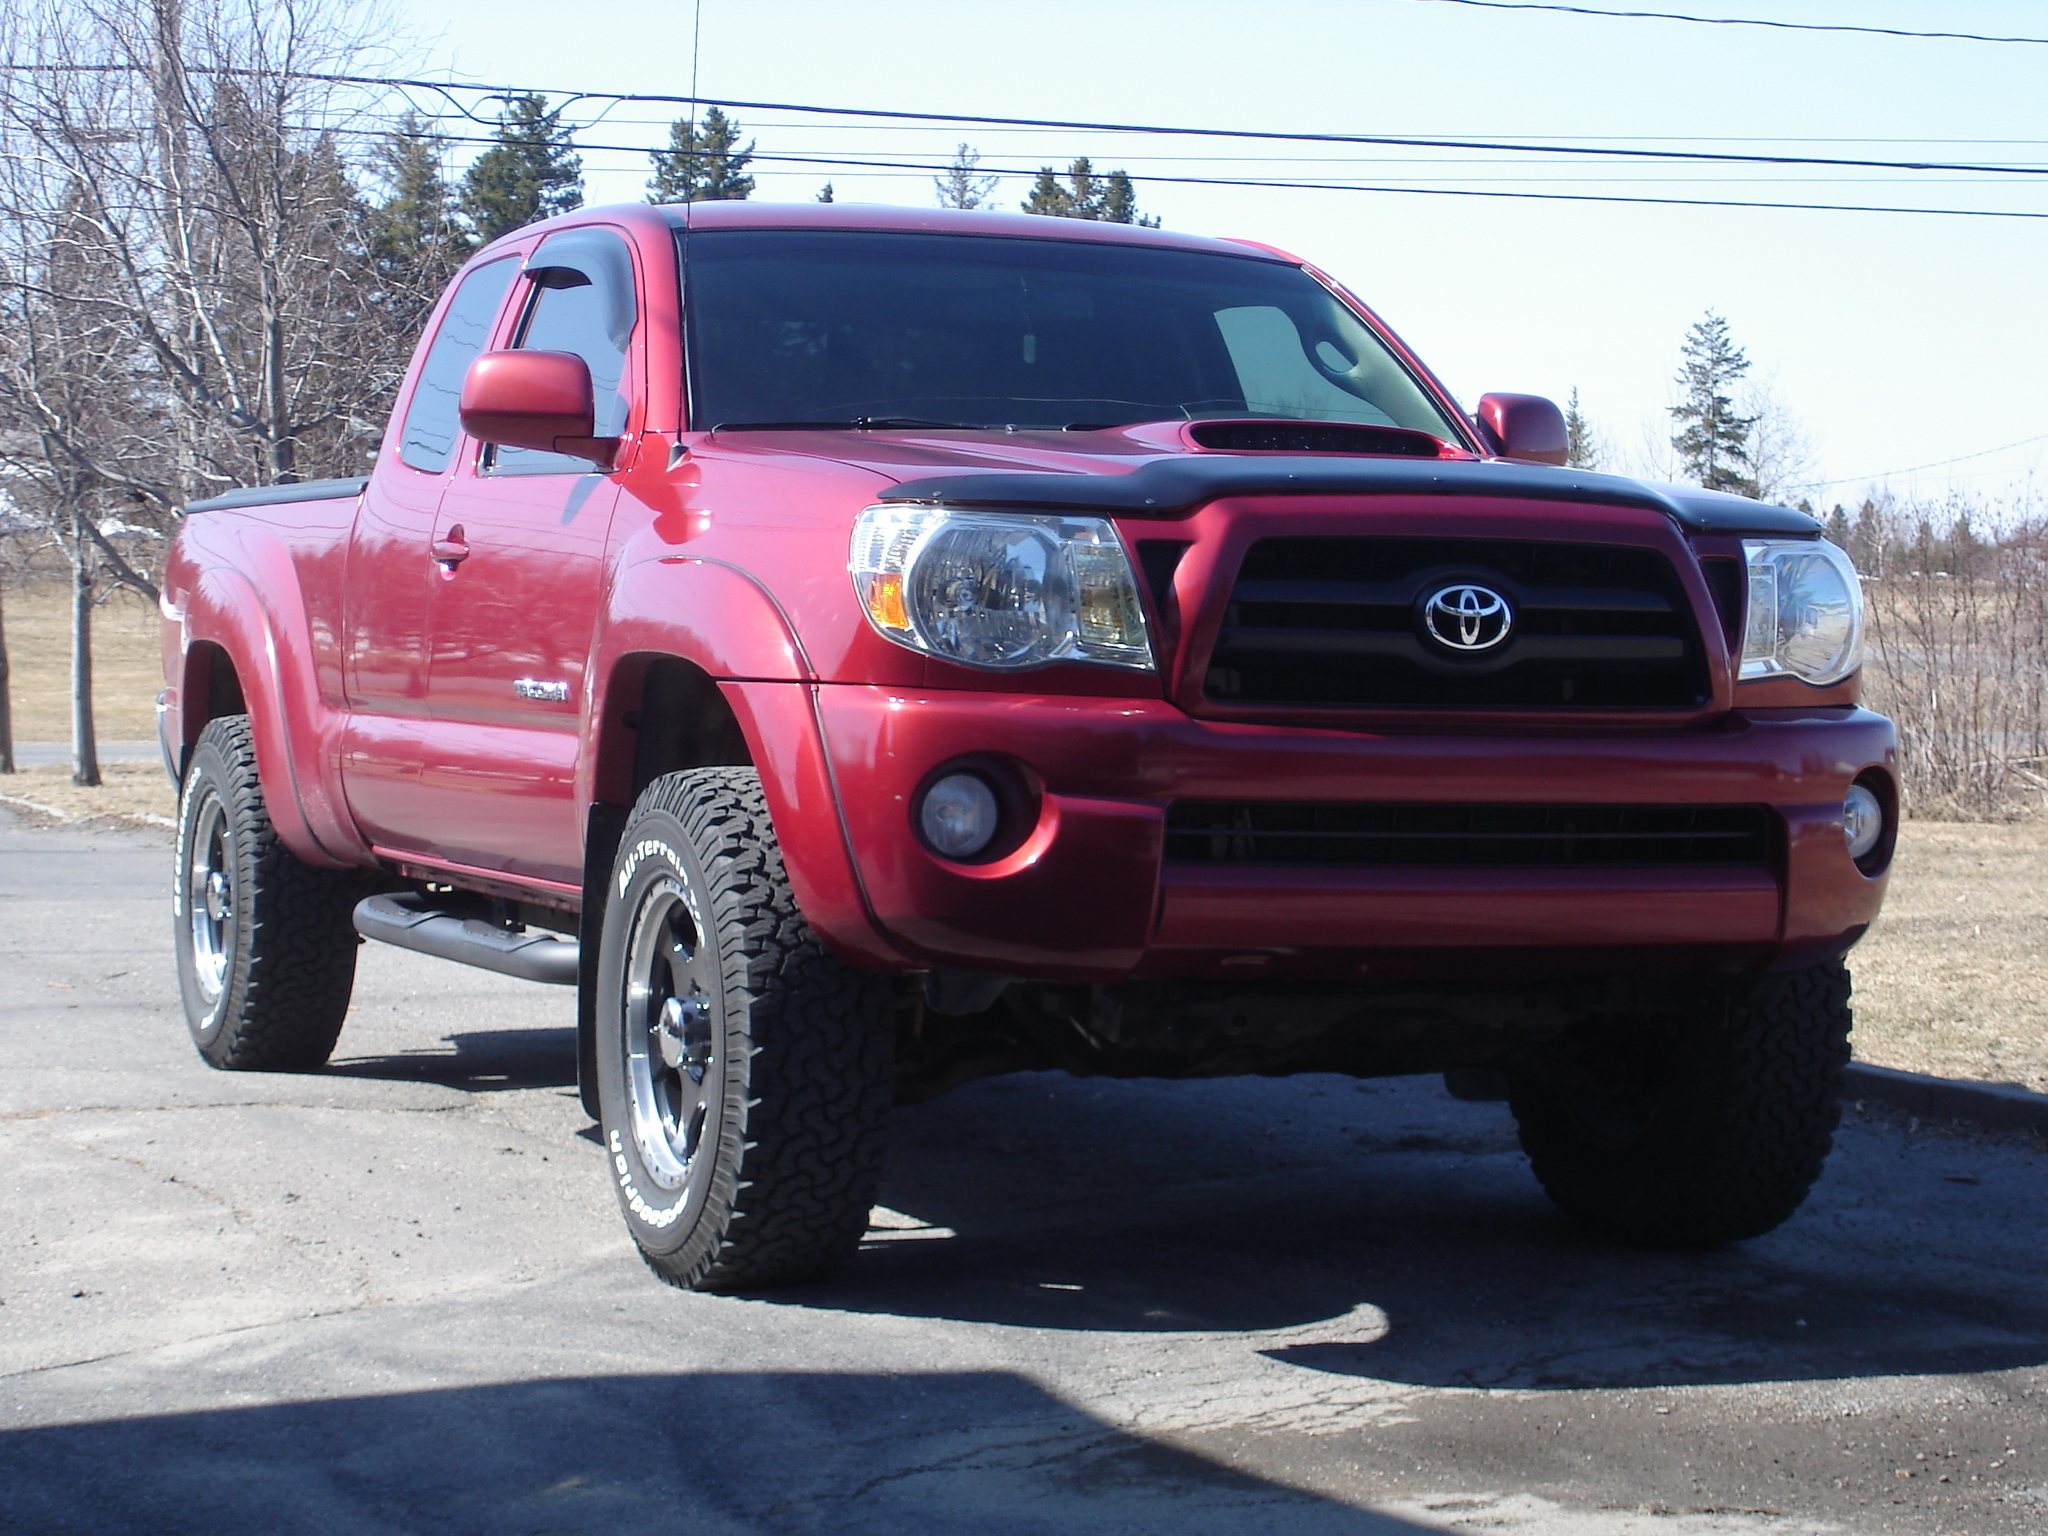 billibra 2005 toyota tacoma xtra cab specs photos modification info at cardomain. Black Bedroom Furniture Sets. Home Design Ideas